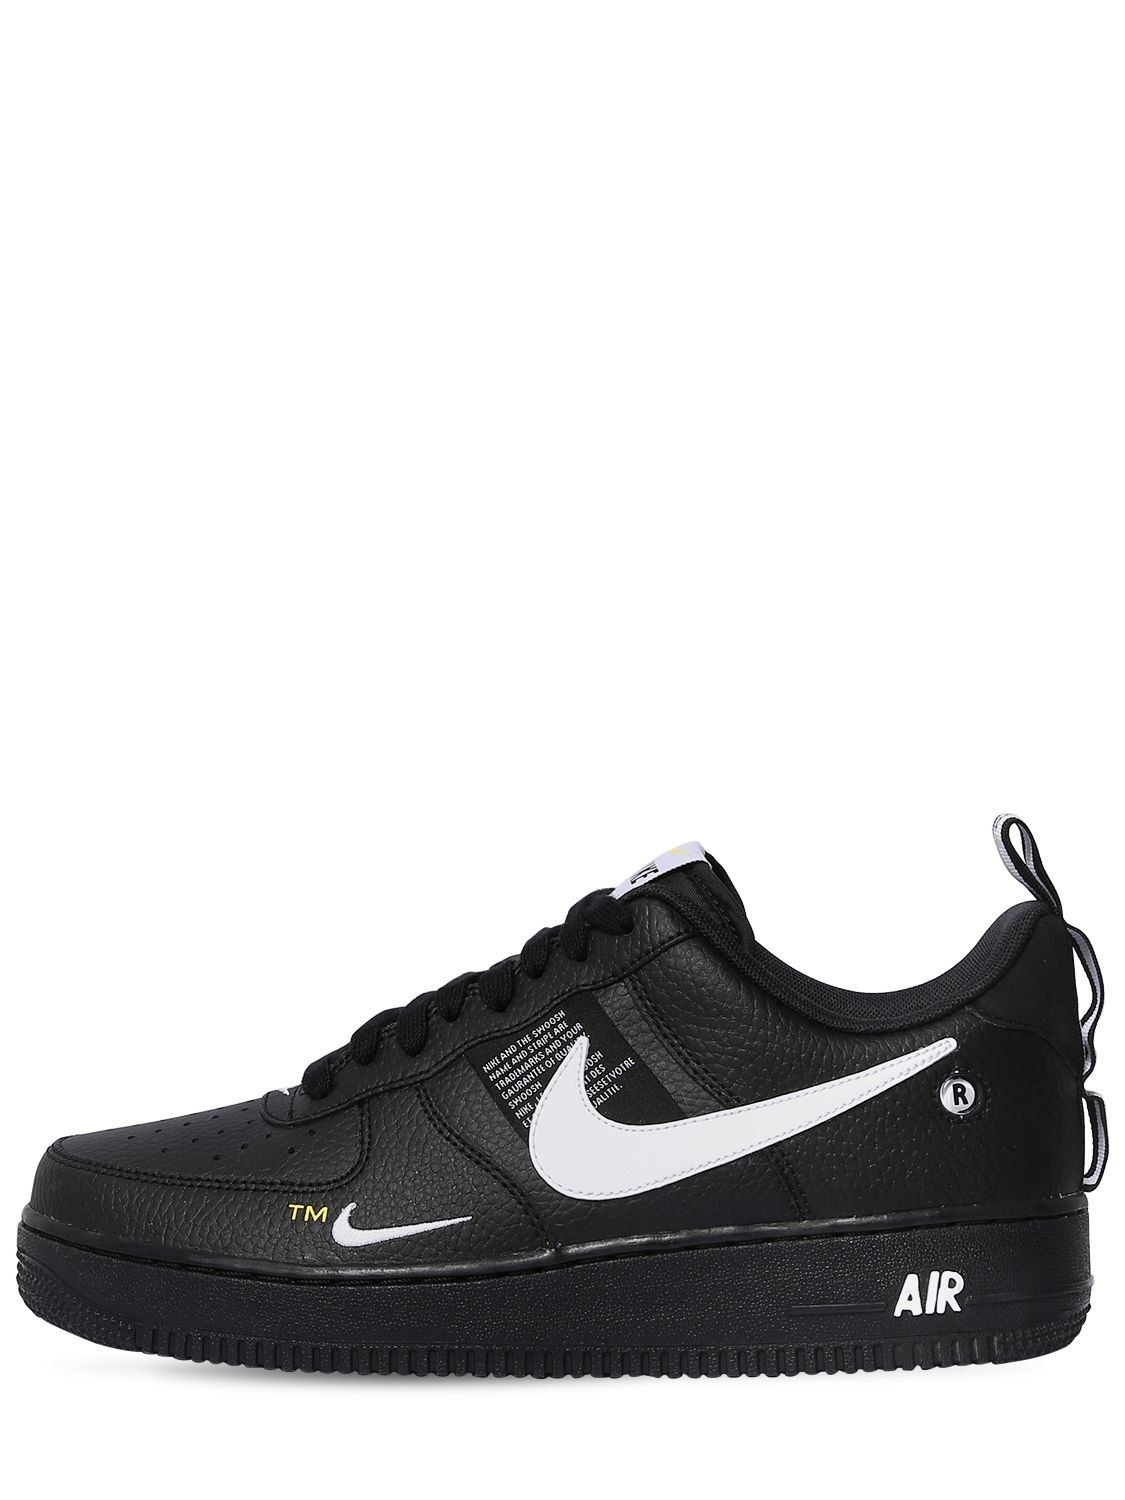 buy online 99f20 9be4c NIKE AIR FORCE 1  07 LV8 UTILITY SNEAKERS.  nike  shoes